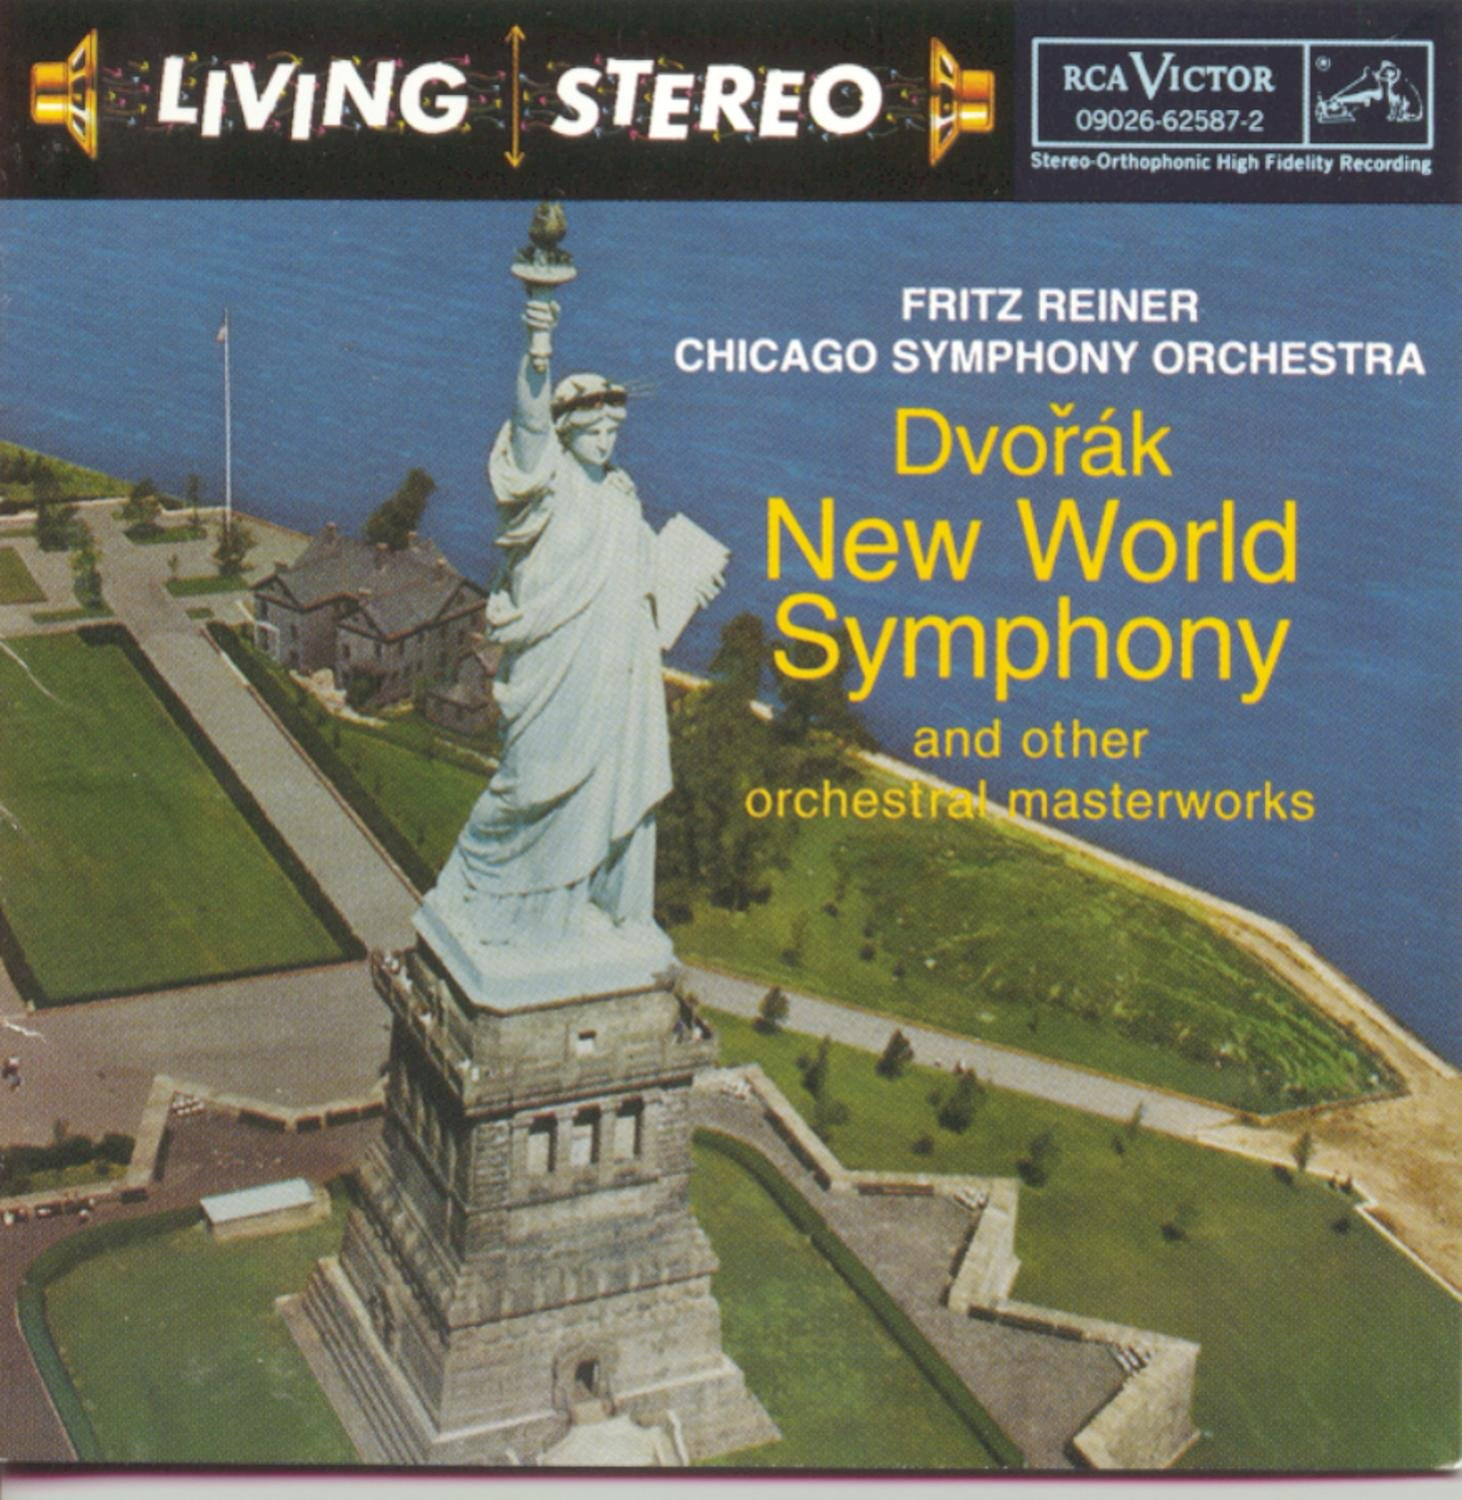 Dvorák: Symphony No. 9 - From the New World / Smetana: Bartered Bride Overture / Weinberger: Schwanda - Polka & Fugue by RCA GOLD SEAL